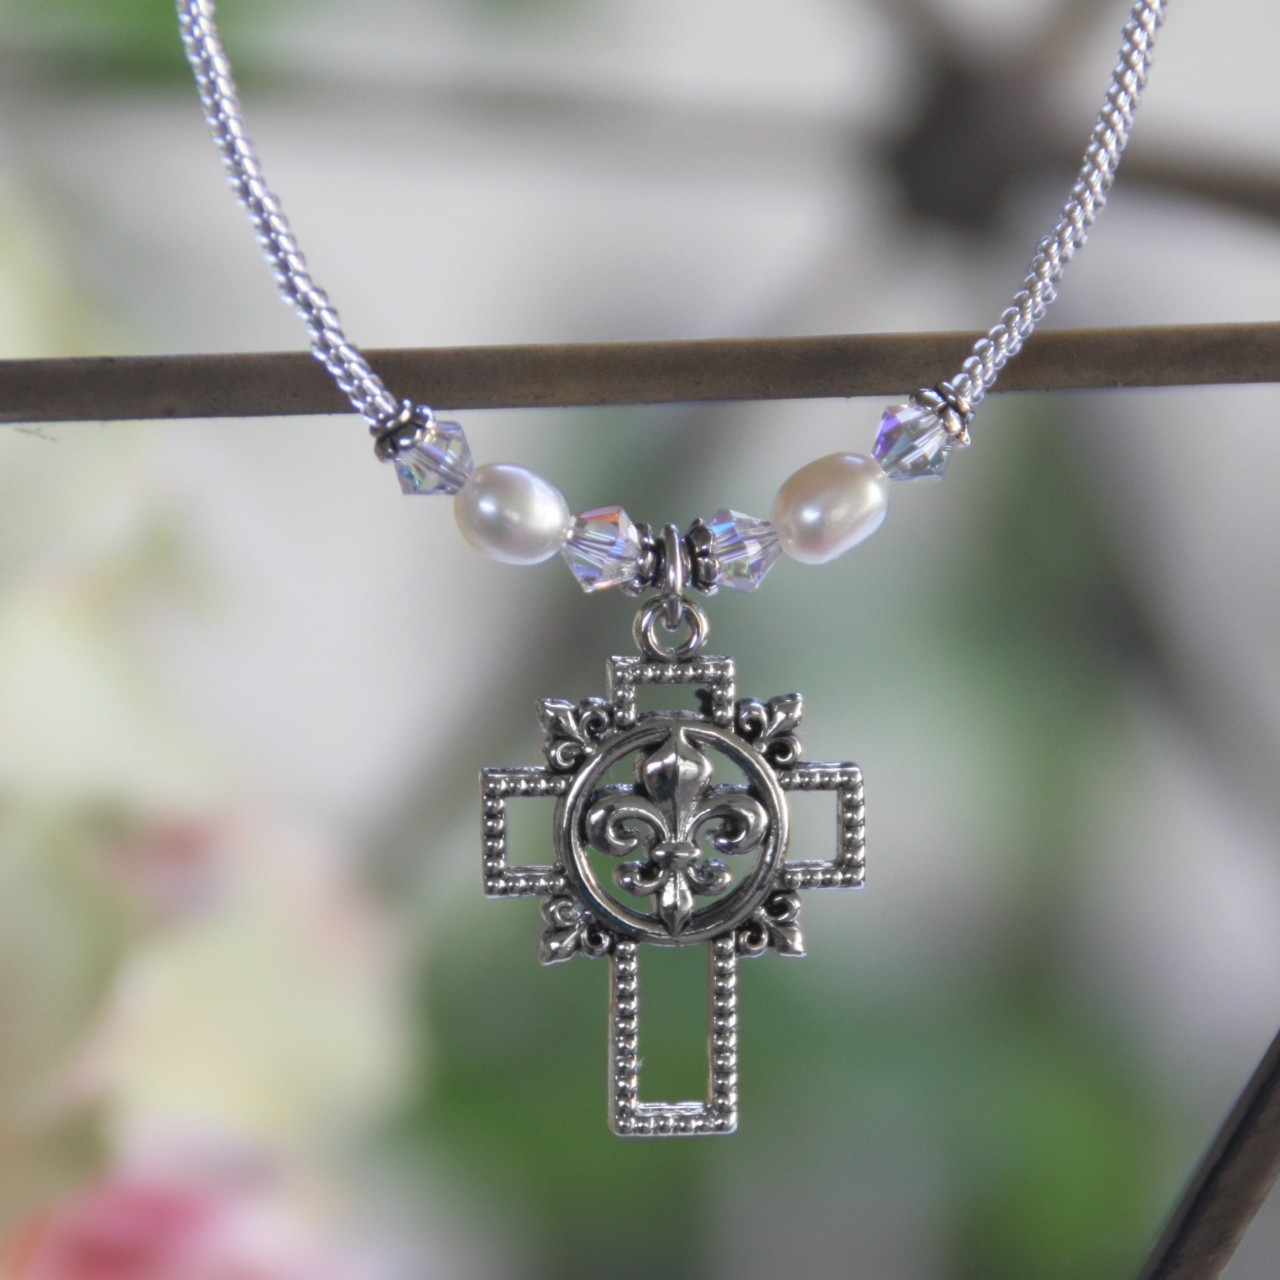 IN-630 Fleur De Lis Cross Necklace with accent Freshwater Pearls